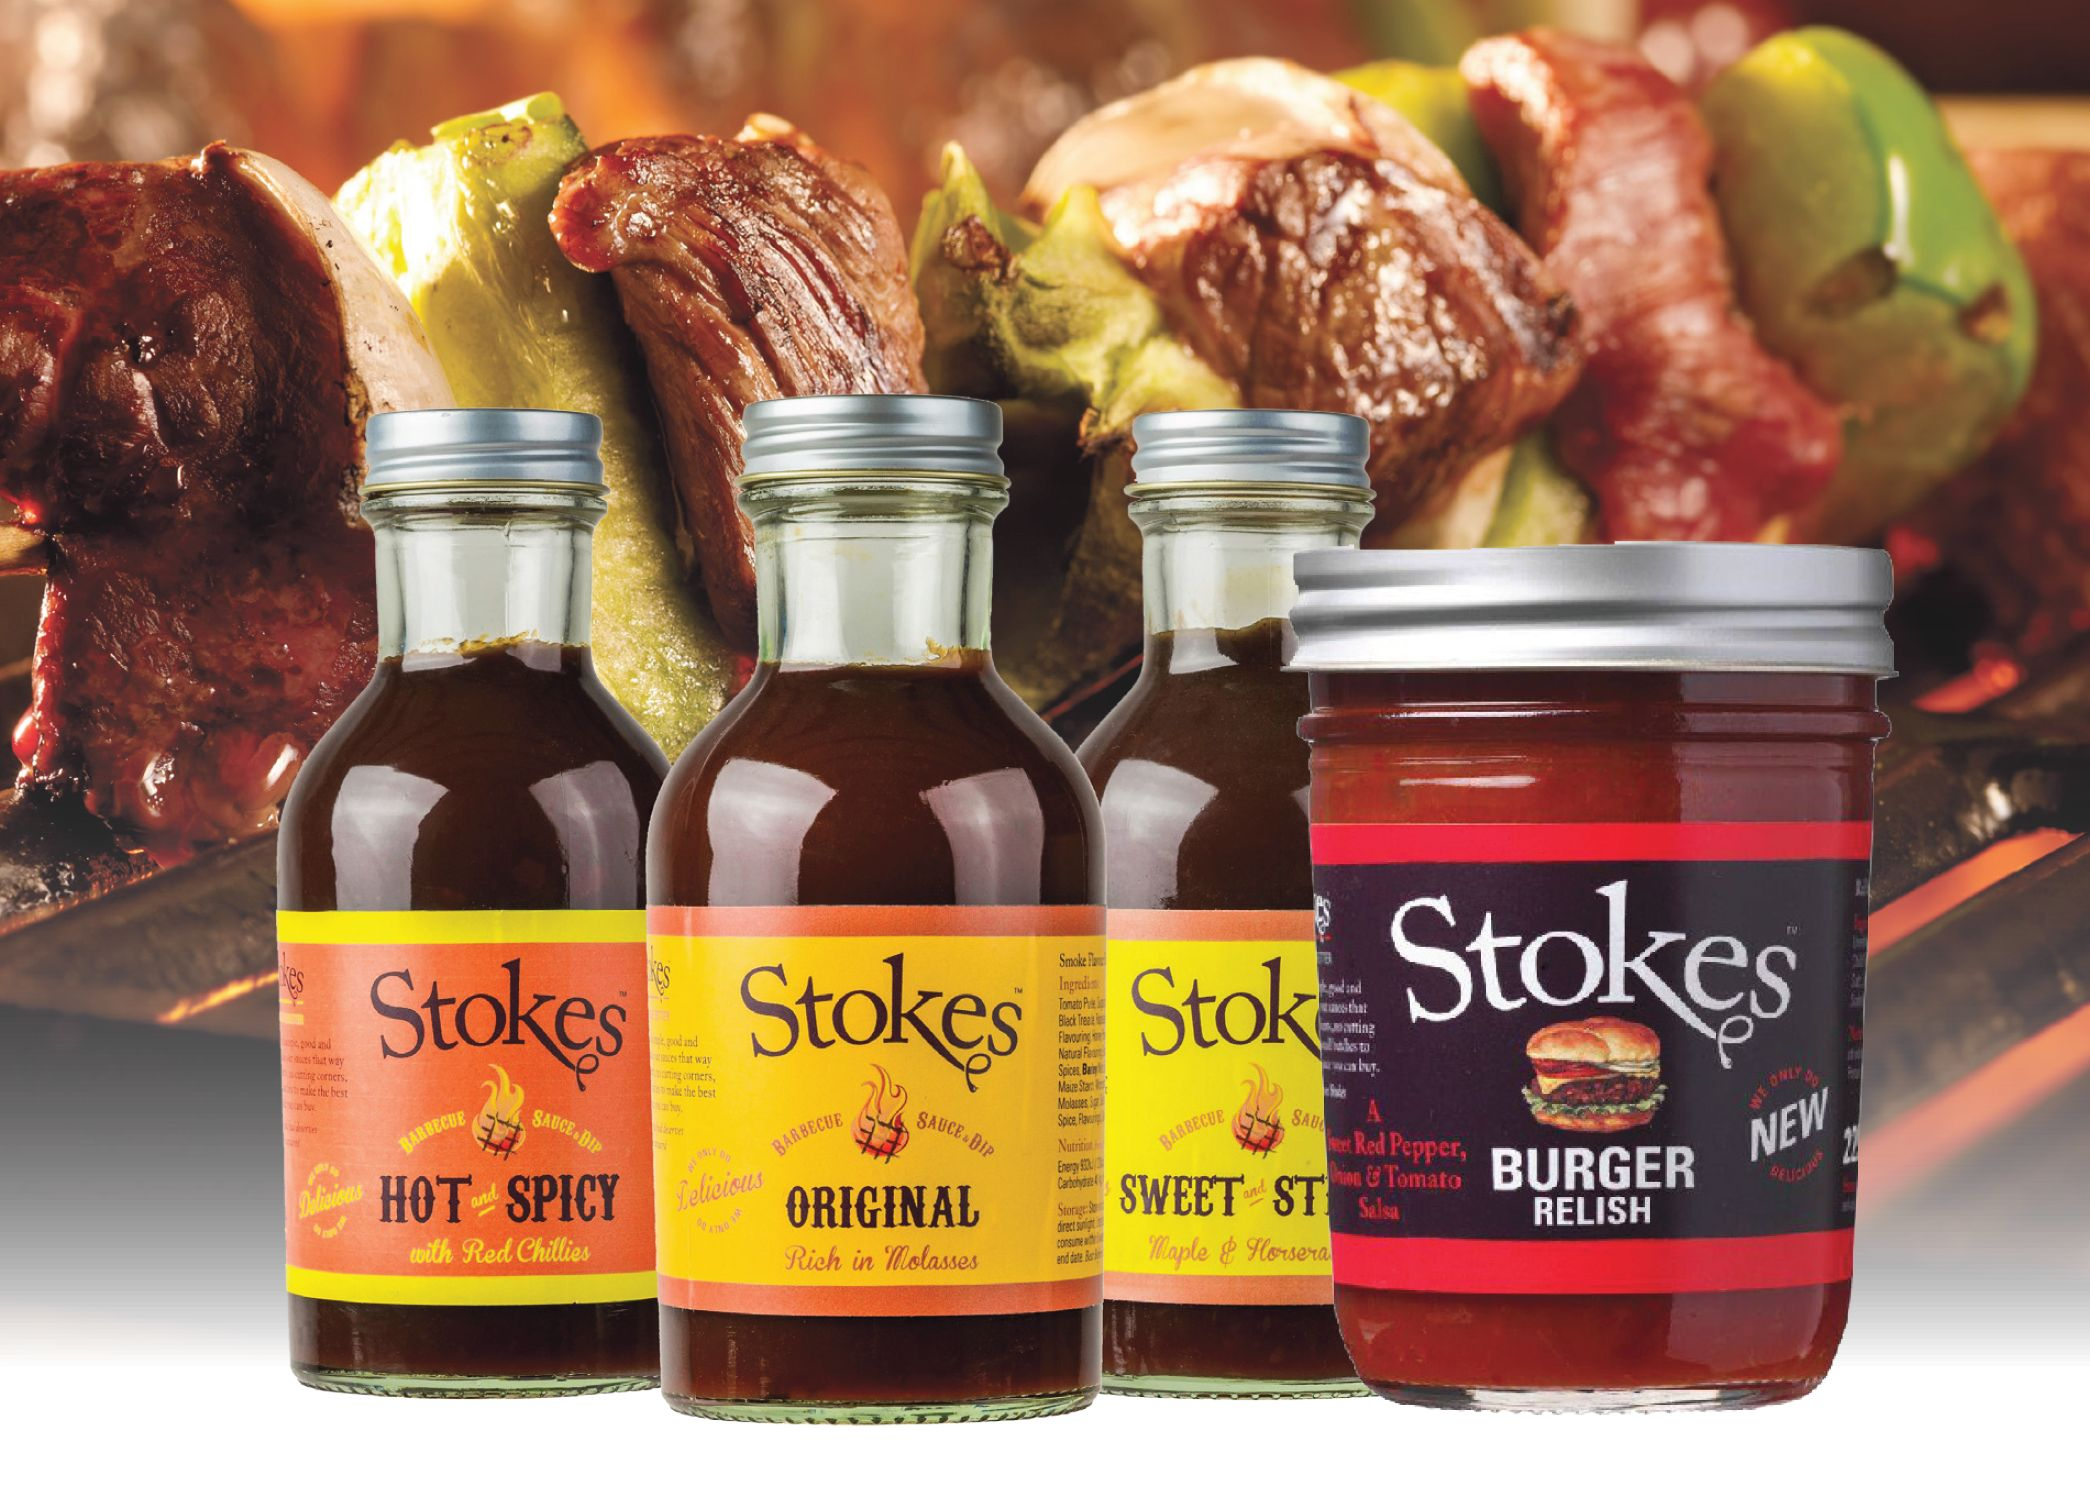 Stokes BBQ grill Sauces